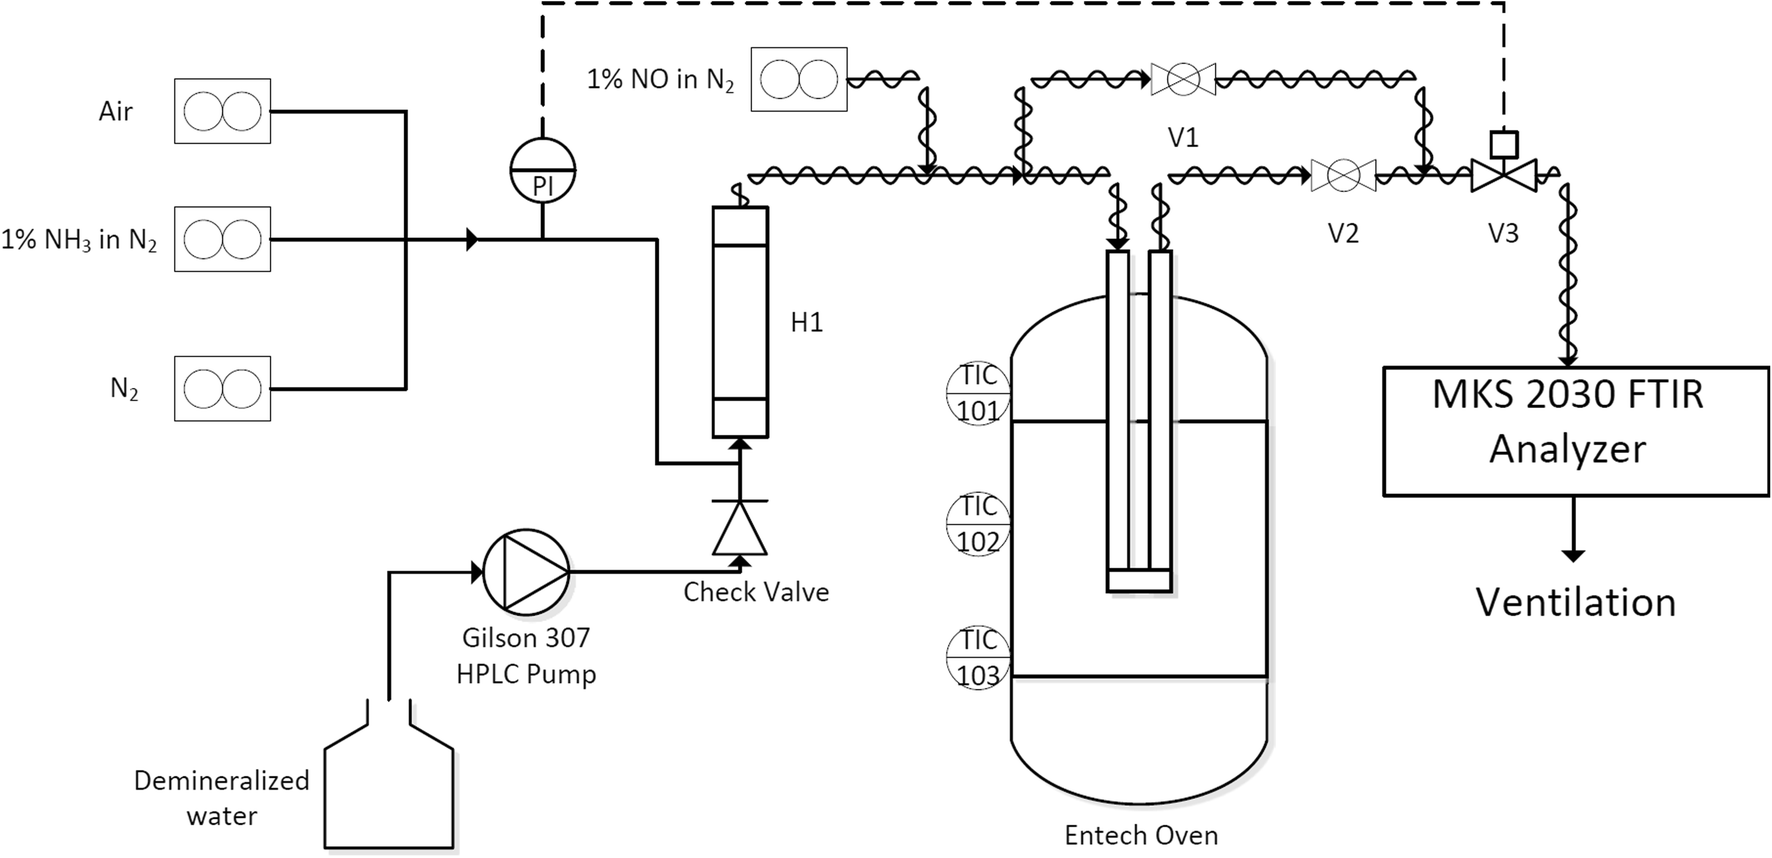 Selective Catalytic Reduction of NOx over V2O5-WO3-TiO2 SCR